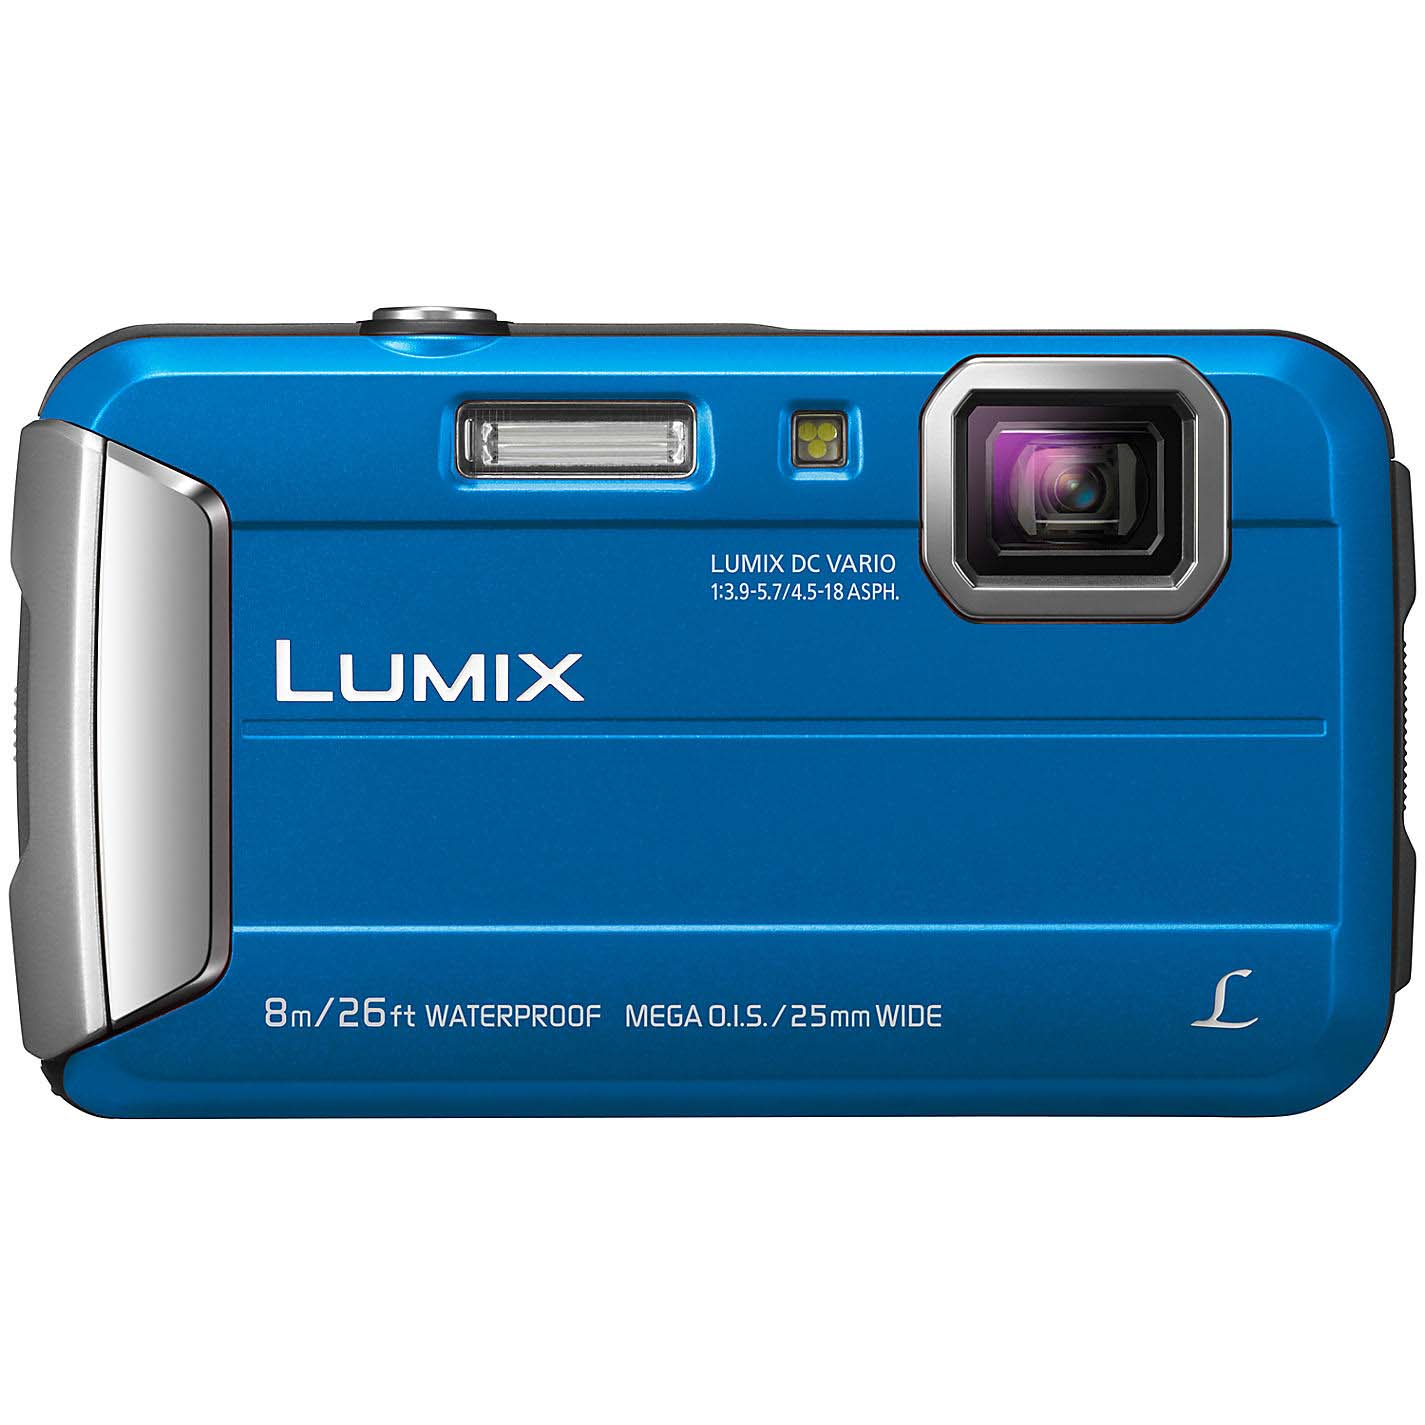 CAMARA PANASONIC DMC-FT30 AZUL